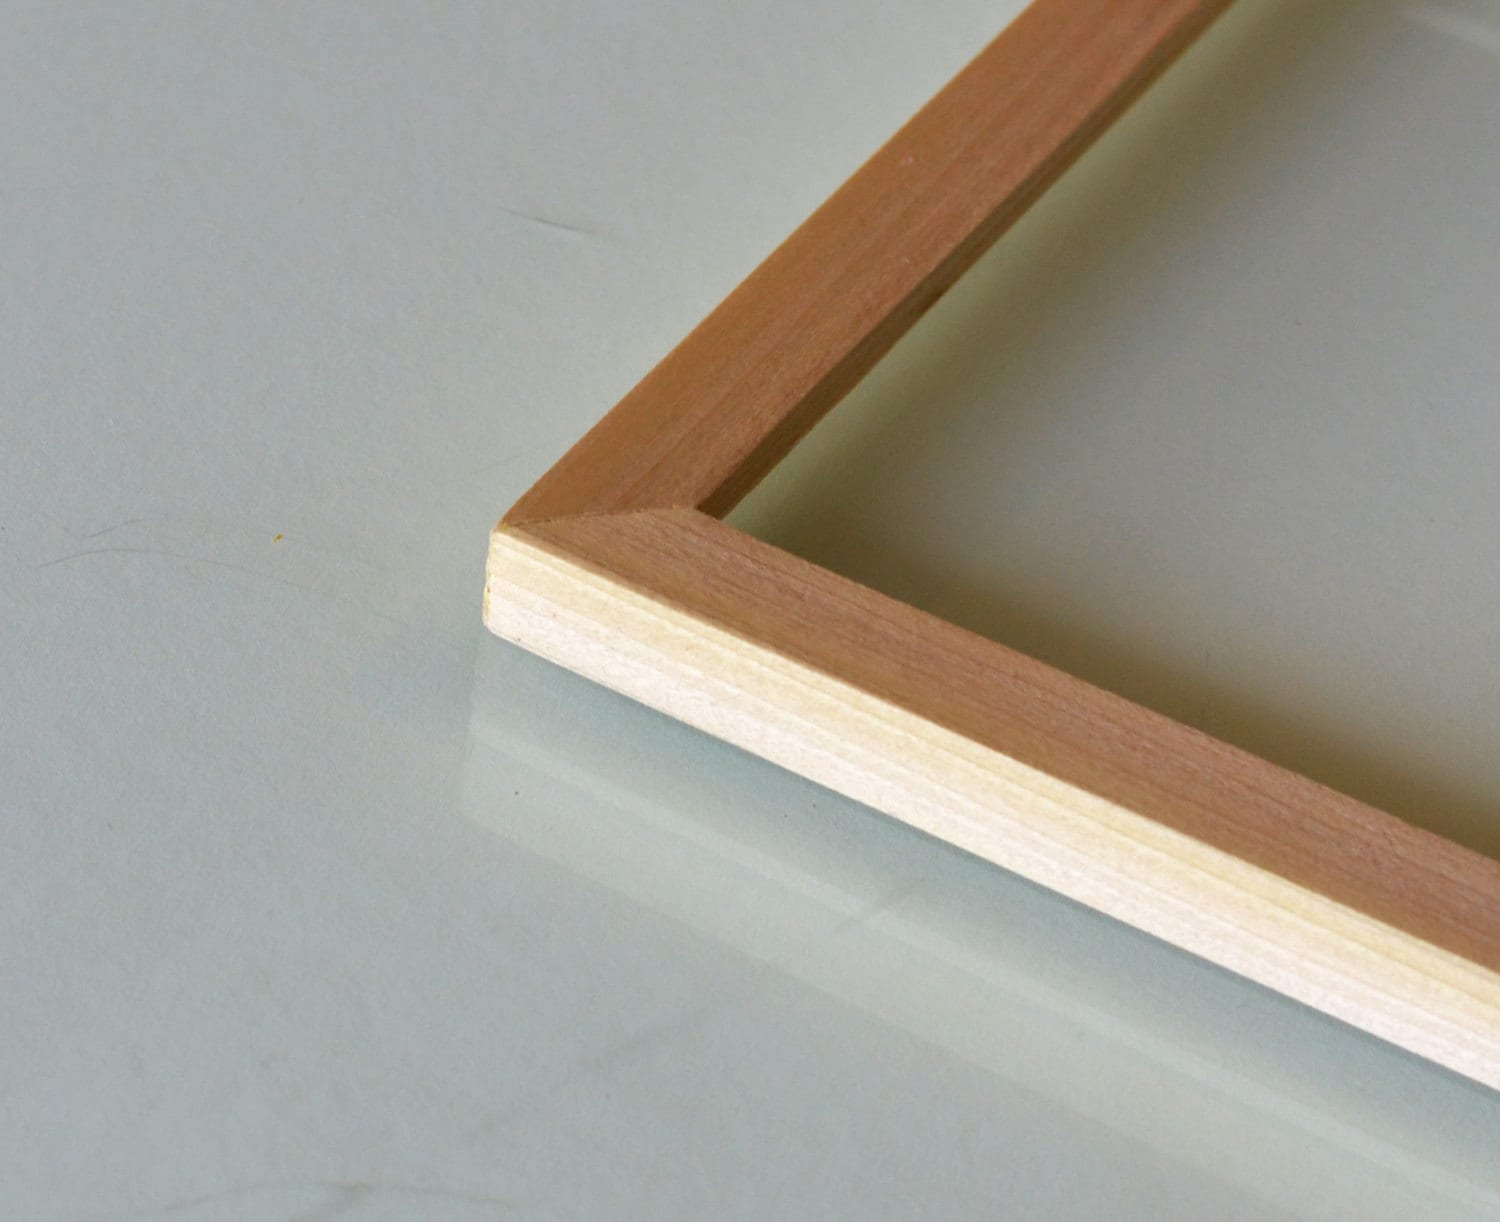 Basic picture frame natural poplar solid hardwood gallery wall basic picture frame natural poplar solid hardwood gallery wall frames choose large size 10x10 9x12 10x12 11x11 12x12 11x13 11x14 jeuxipadfo Image collections